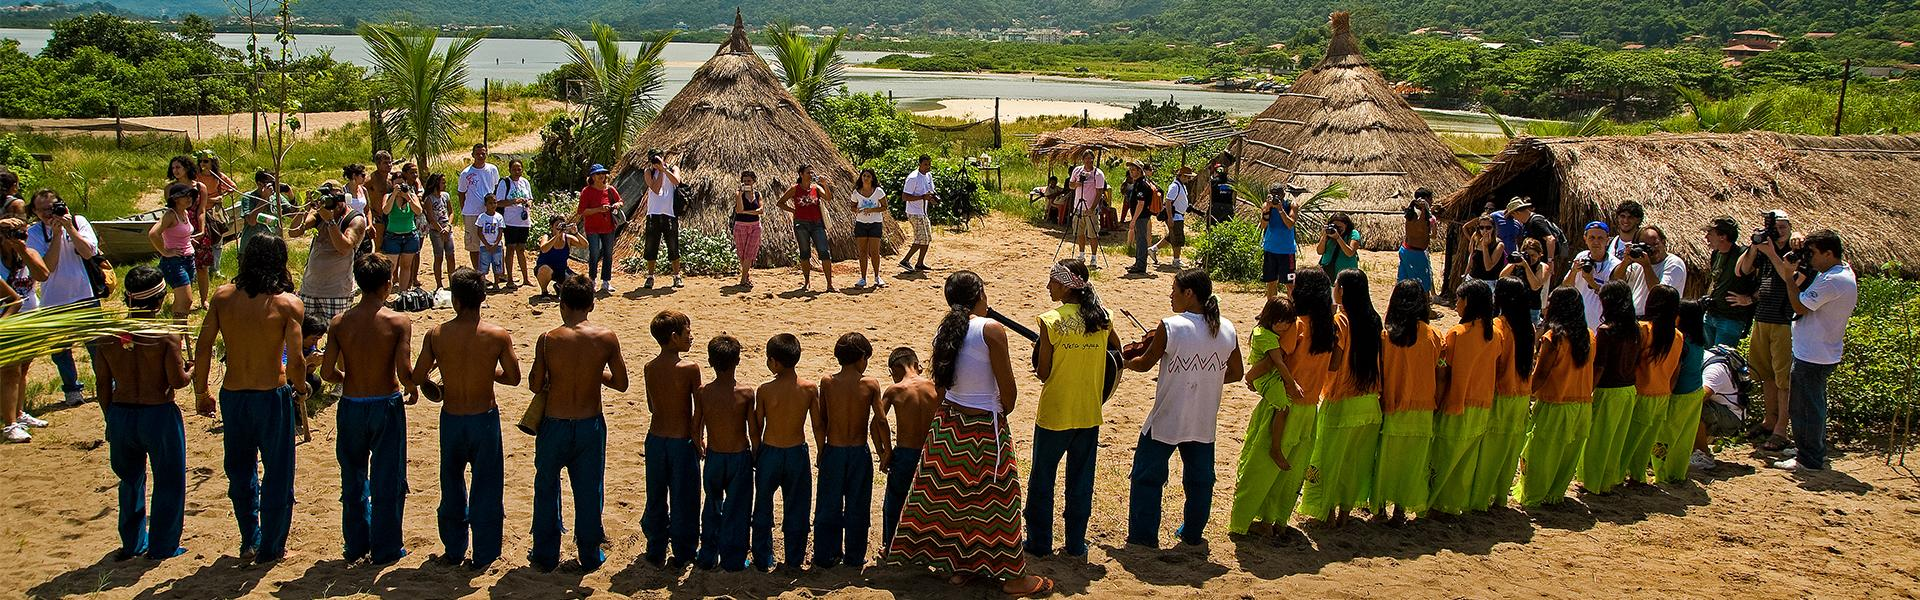 Tupi Guarani Indians lived in a village on the Camboninha beach in Niteroi.